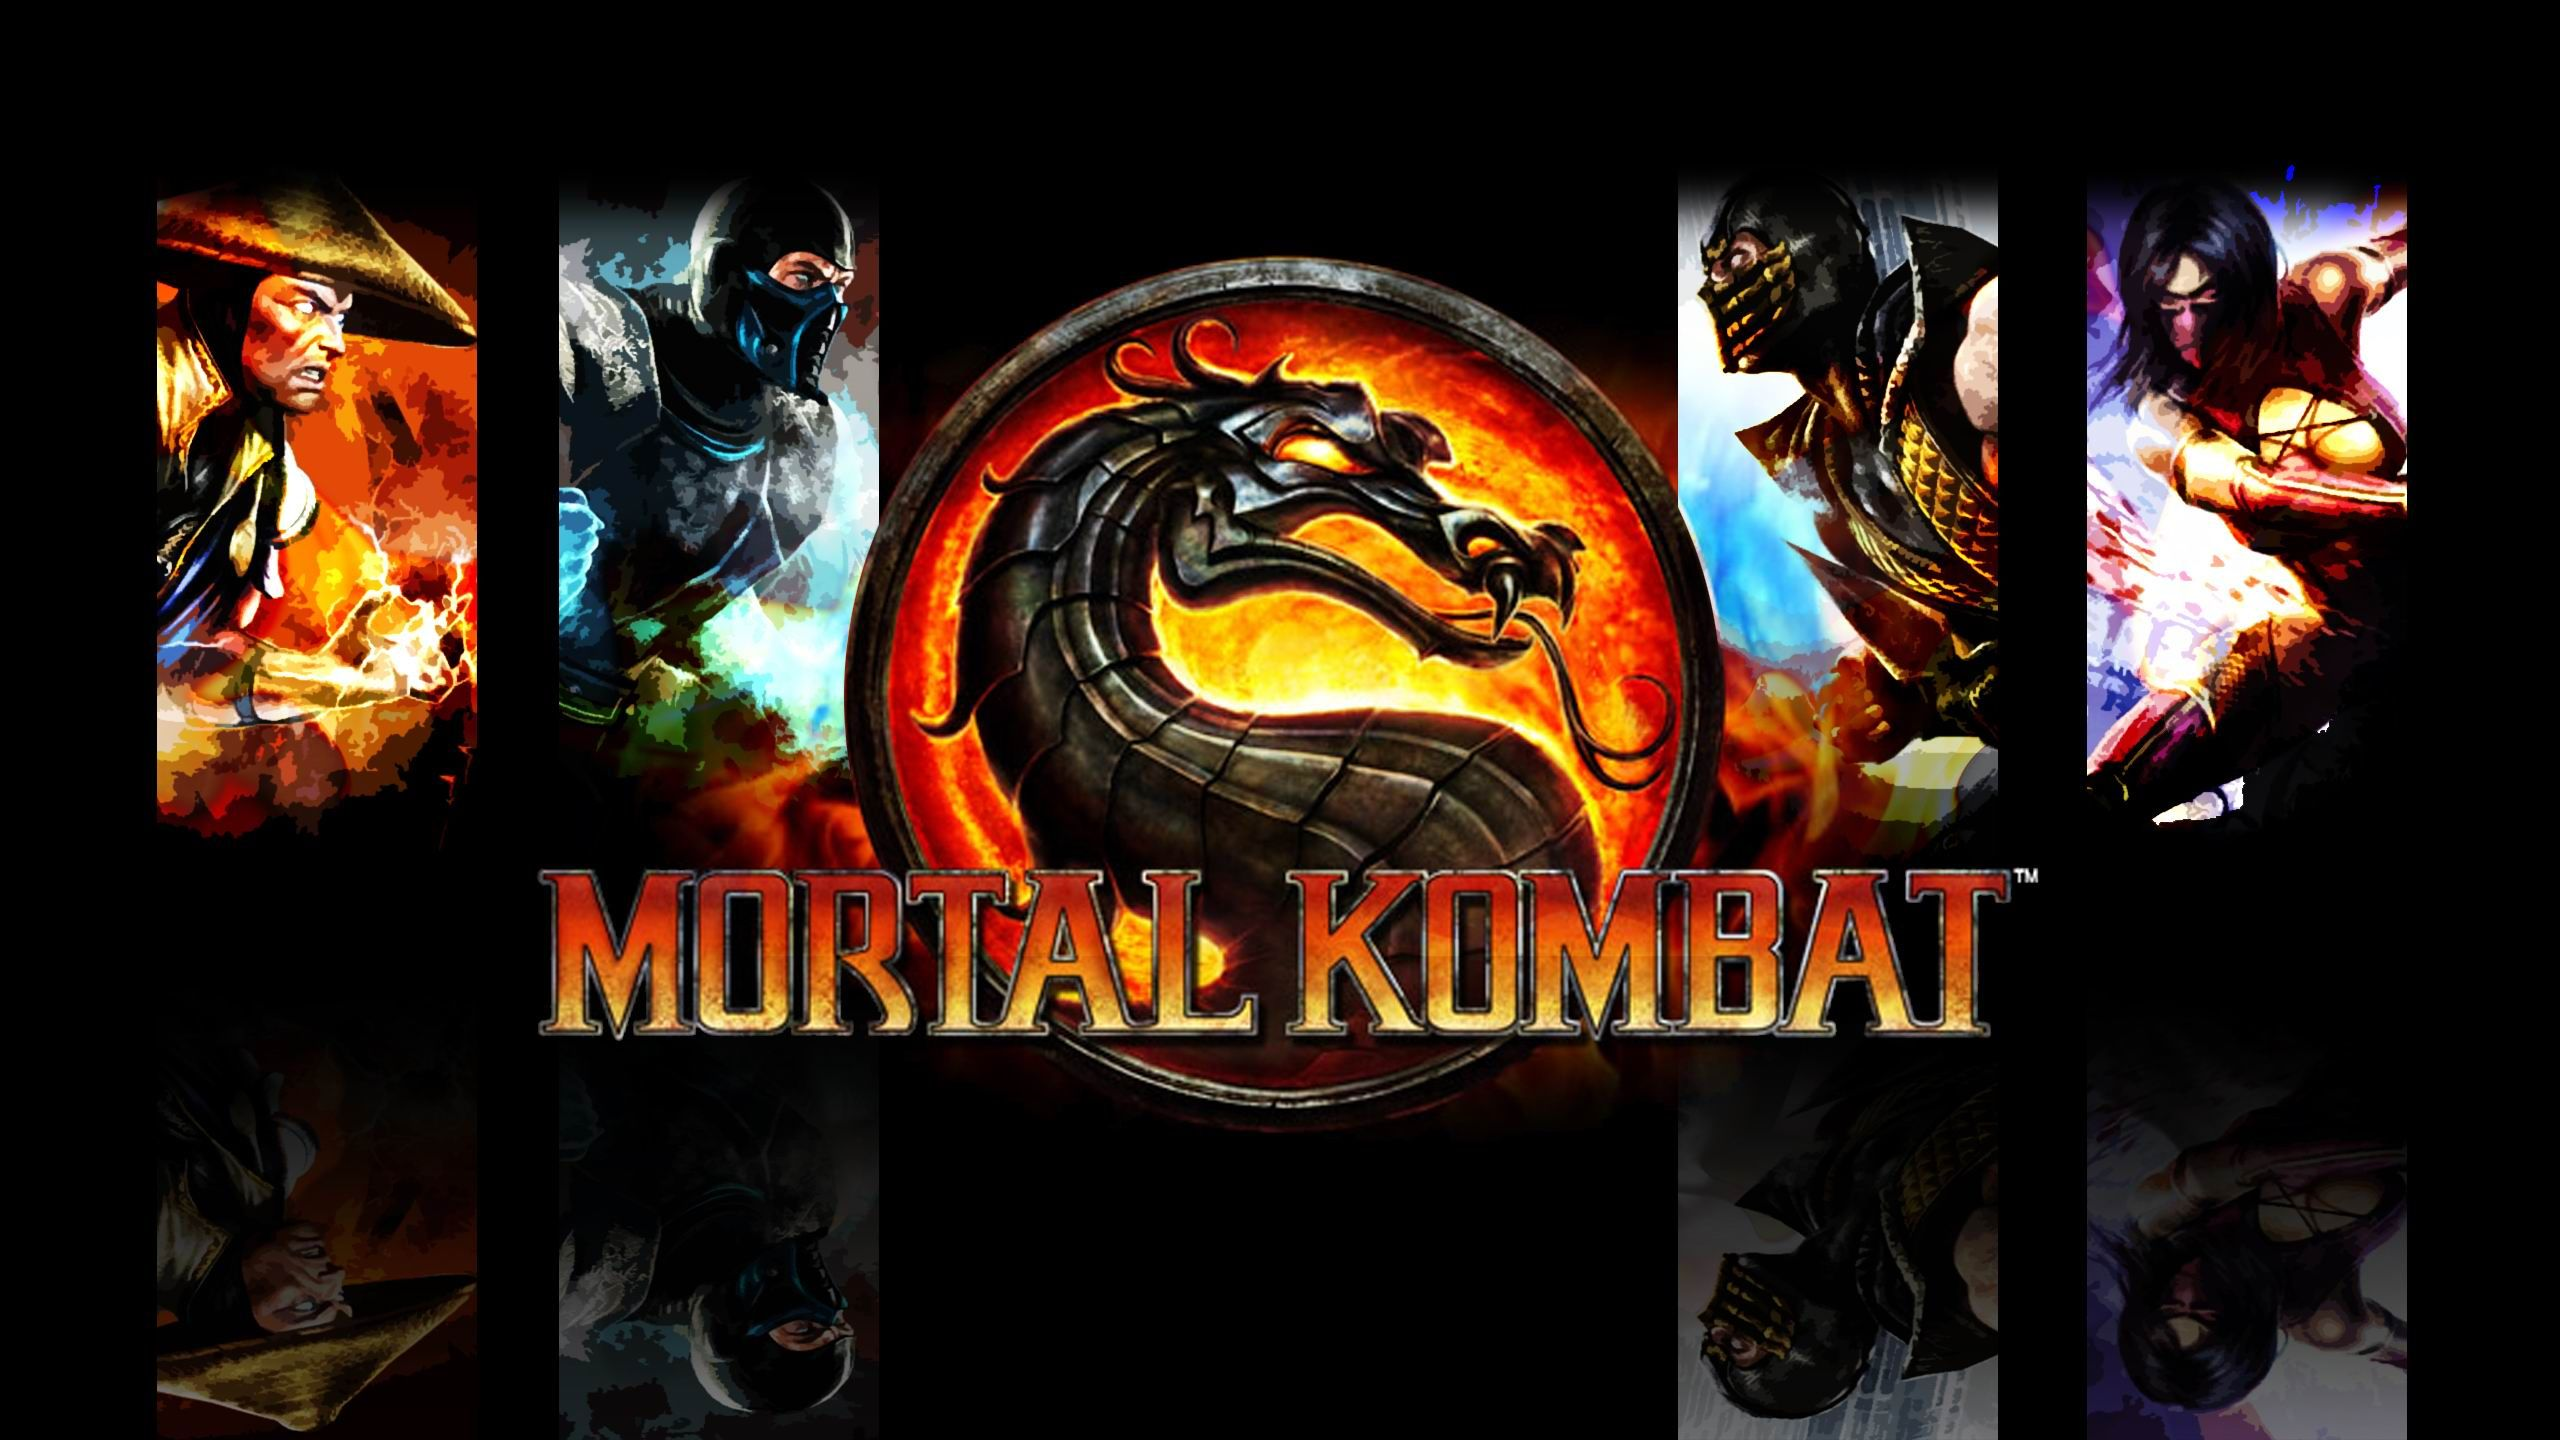 75 Mortal Kombat Movie Wallpaper On Wallpapersafari